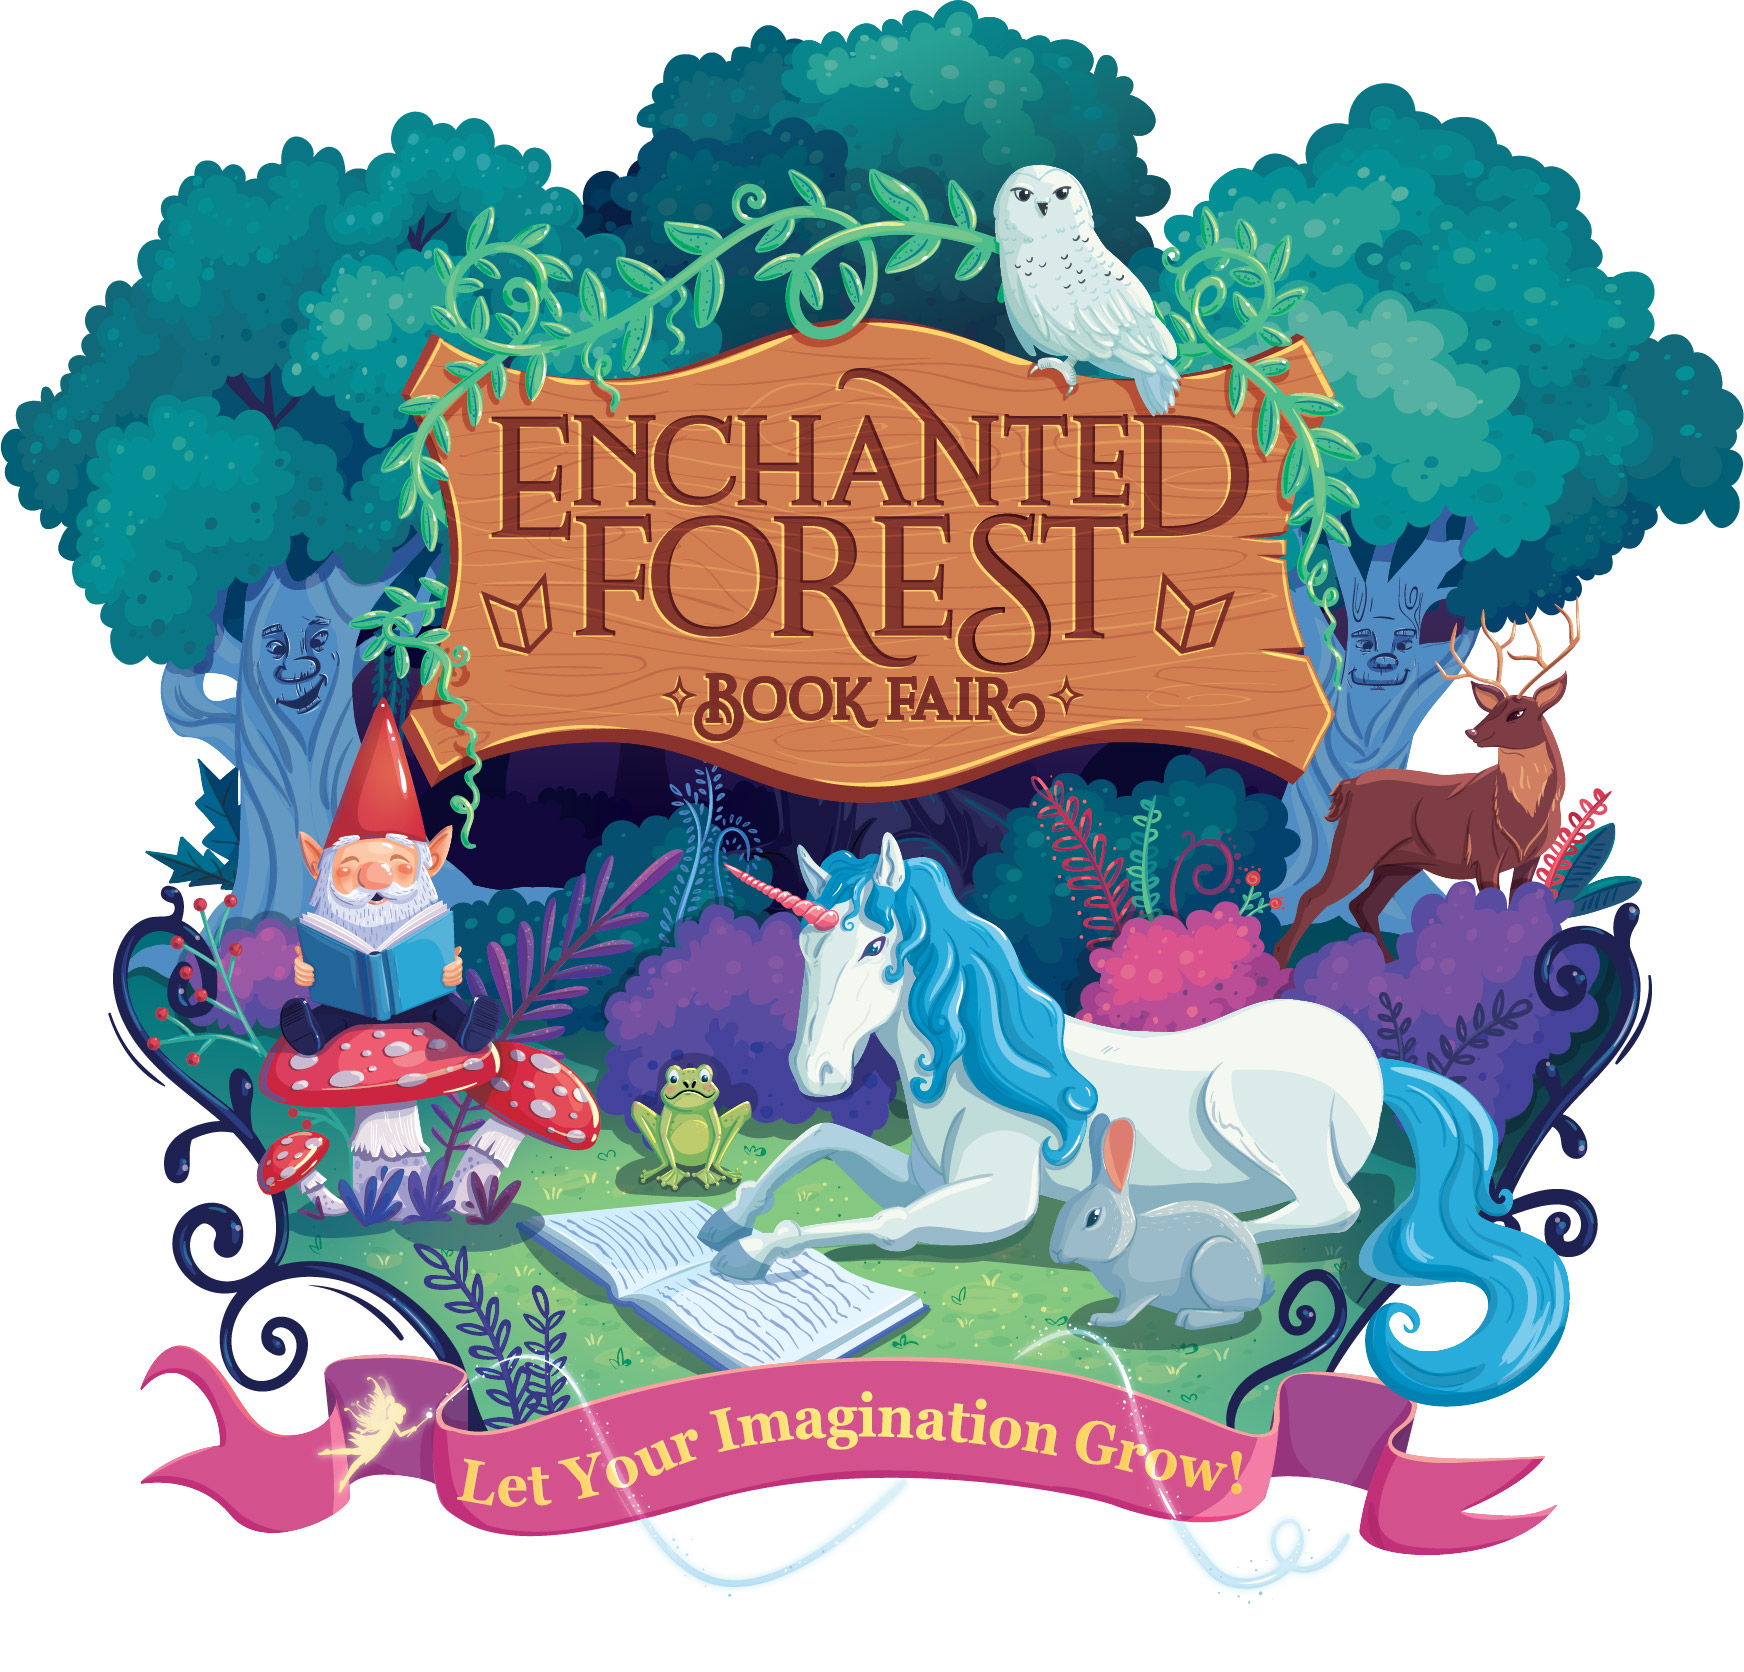 Enchanted Forest Book Fair, Let your imagination Grow!